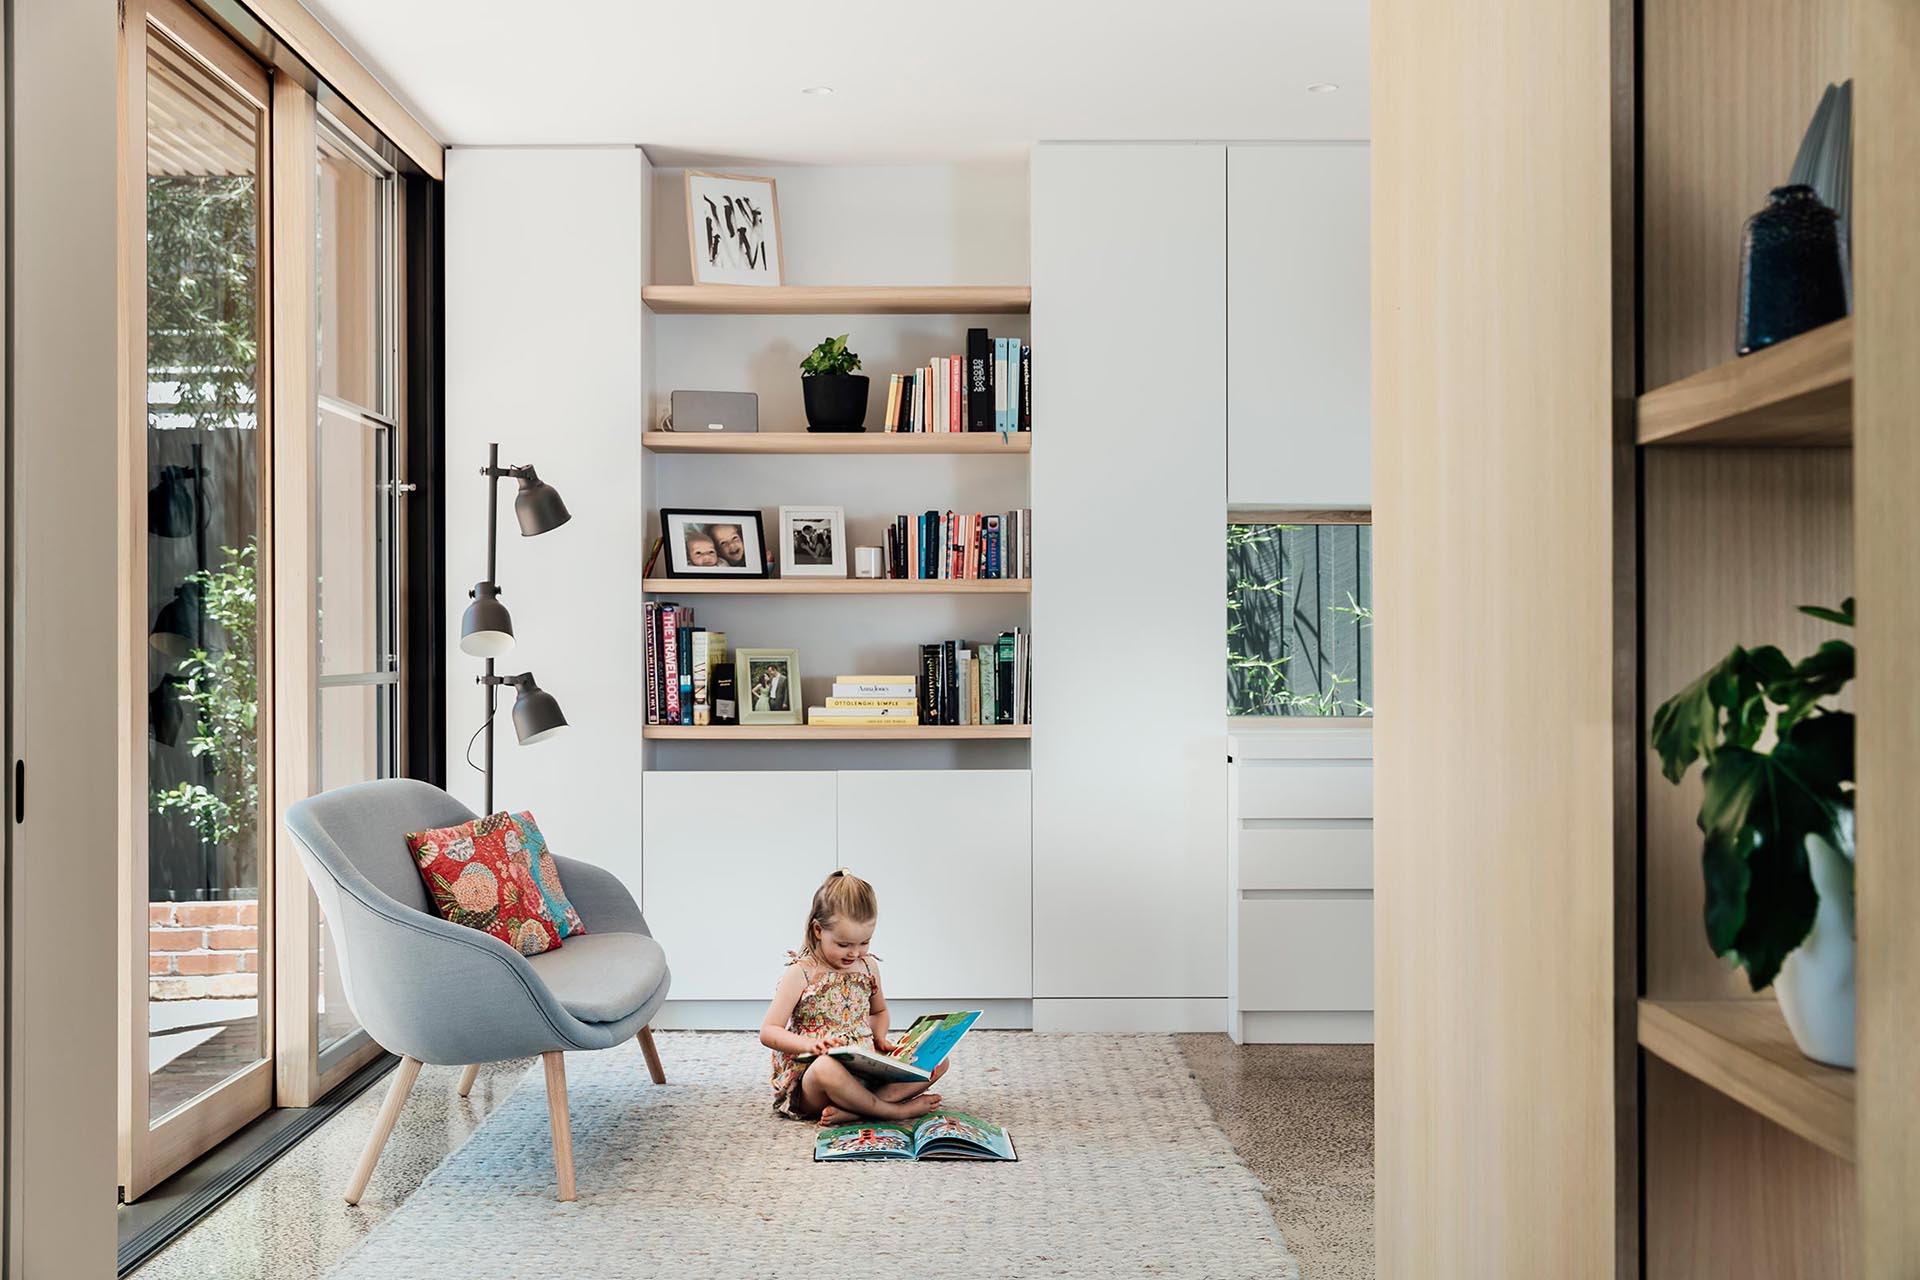 A small reading corner that's furnished with open shelving, a rug, a floor lamp, and a small sofa.